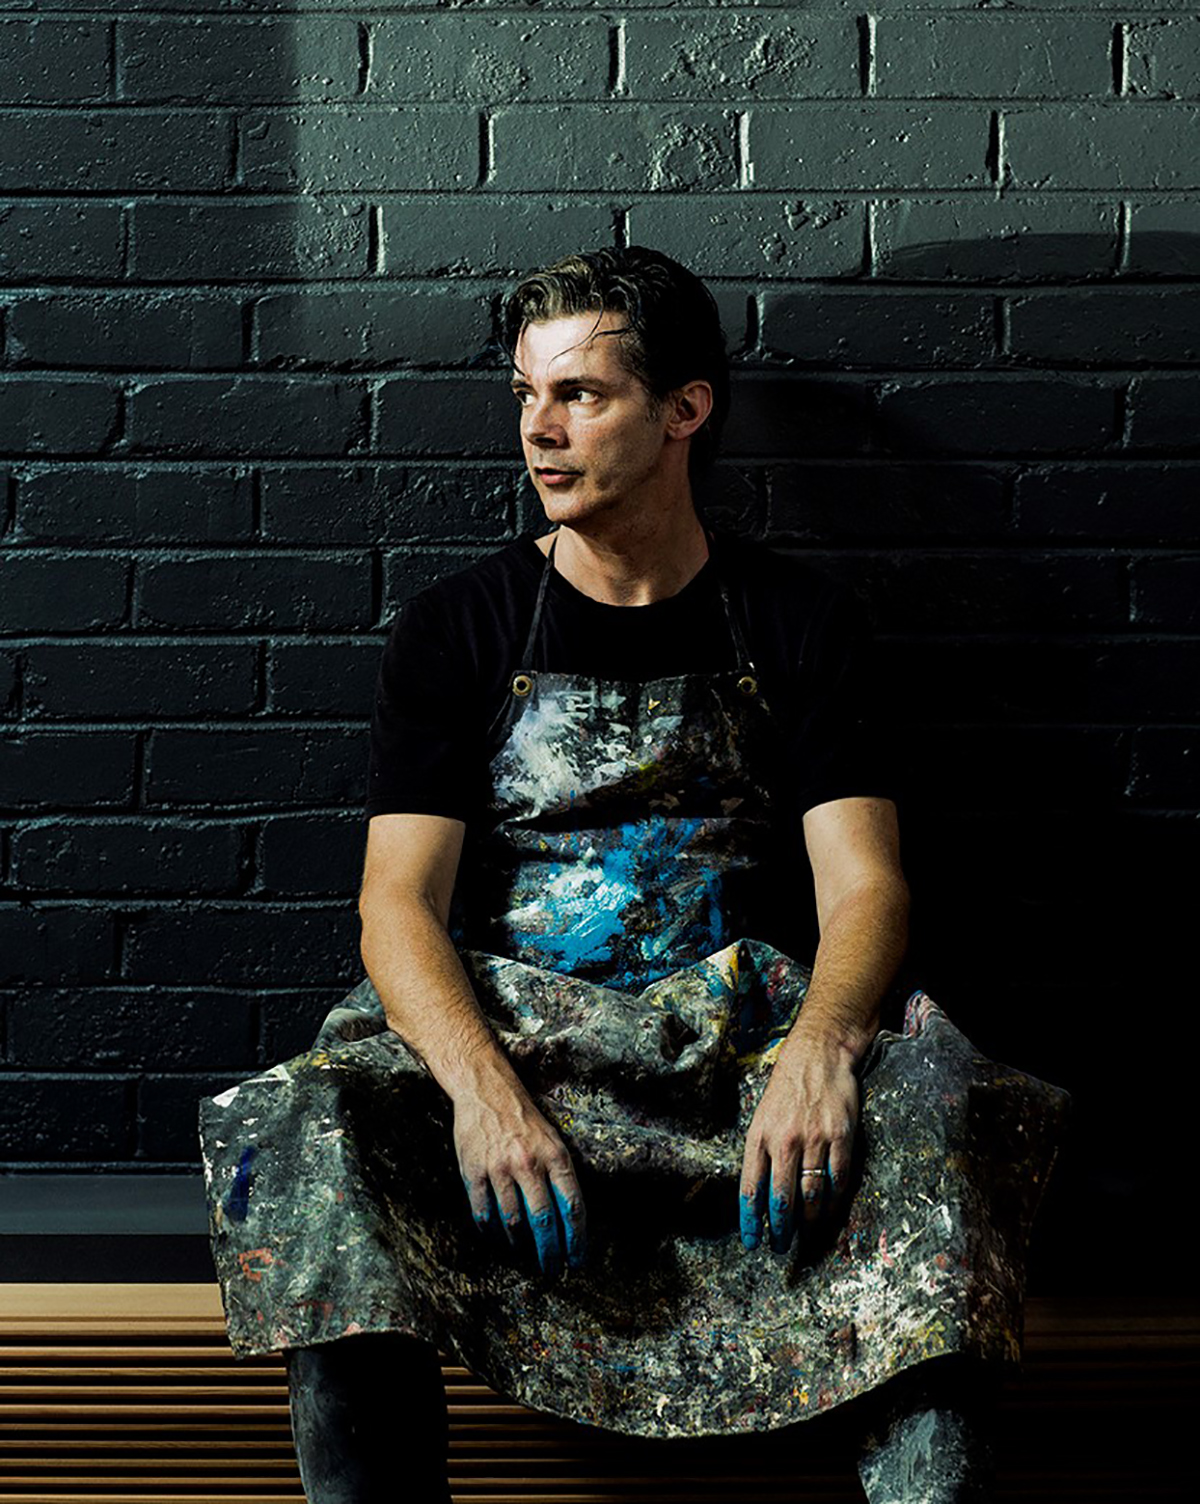 Colour photograph of Paint-maker and author David Coles wearing a paint smattered apron and sitting against a black wall.